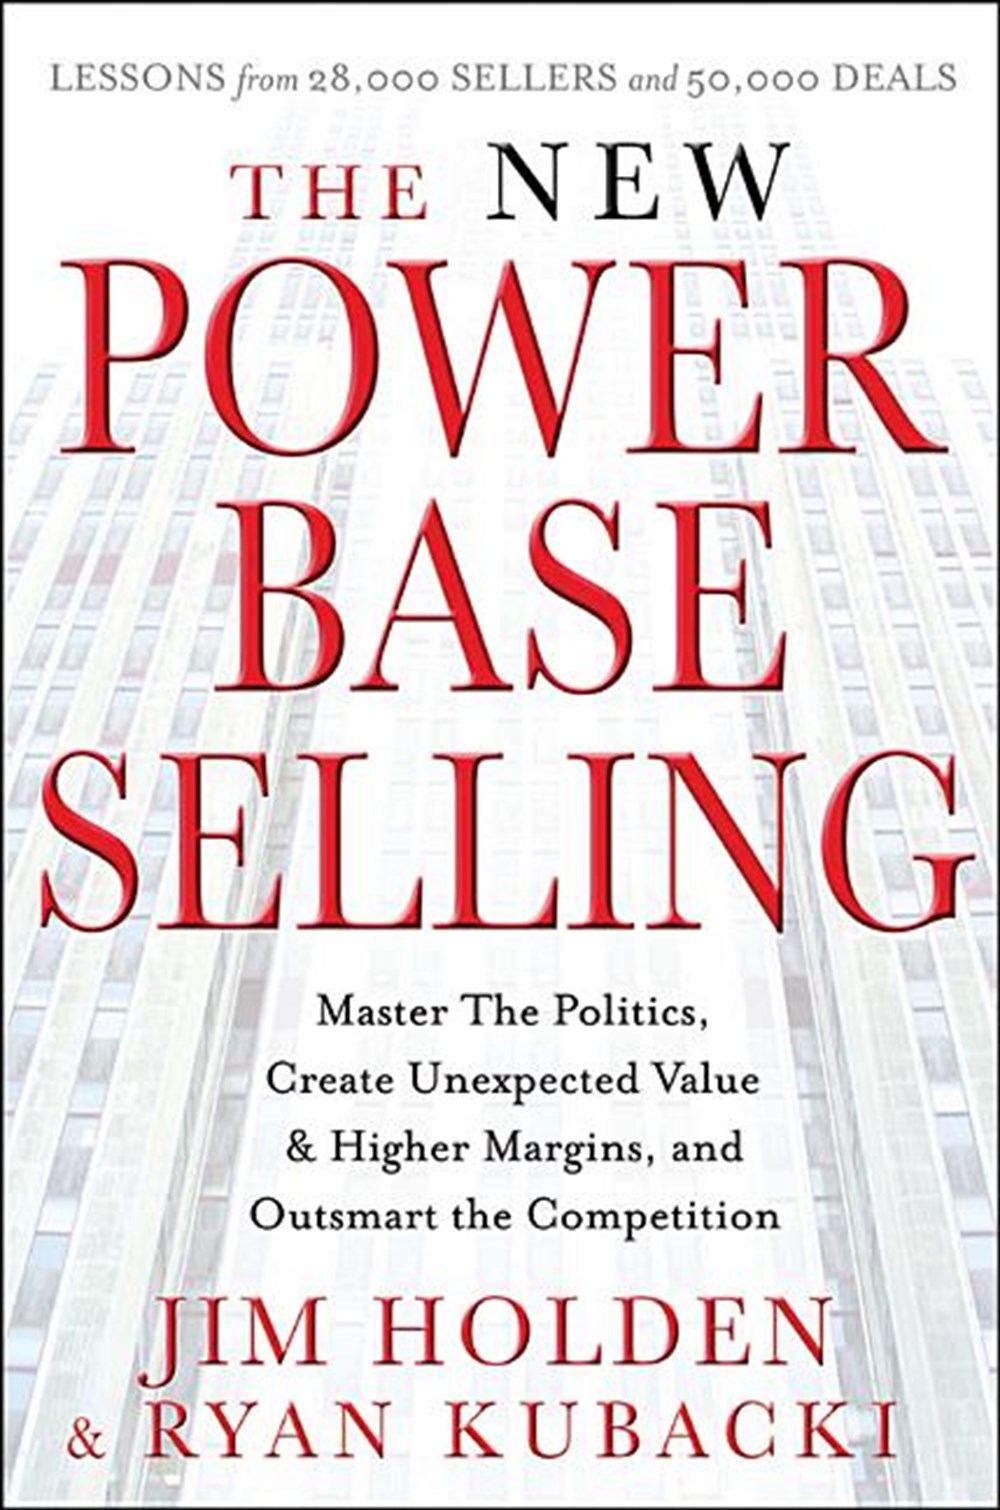 New Power Base Selling Master the Politics, Create Unexpected Value and Higher Margins, and Outsmart